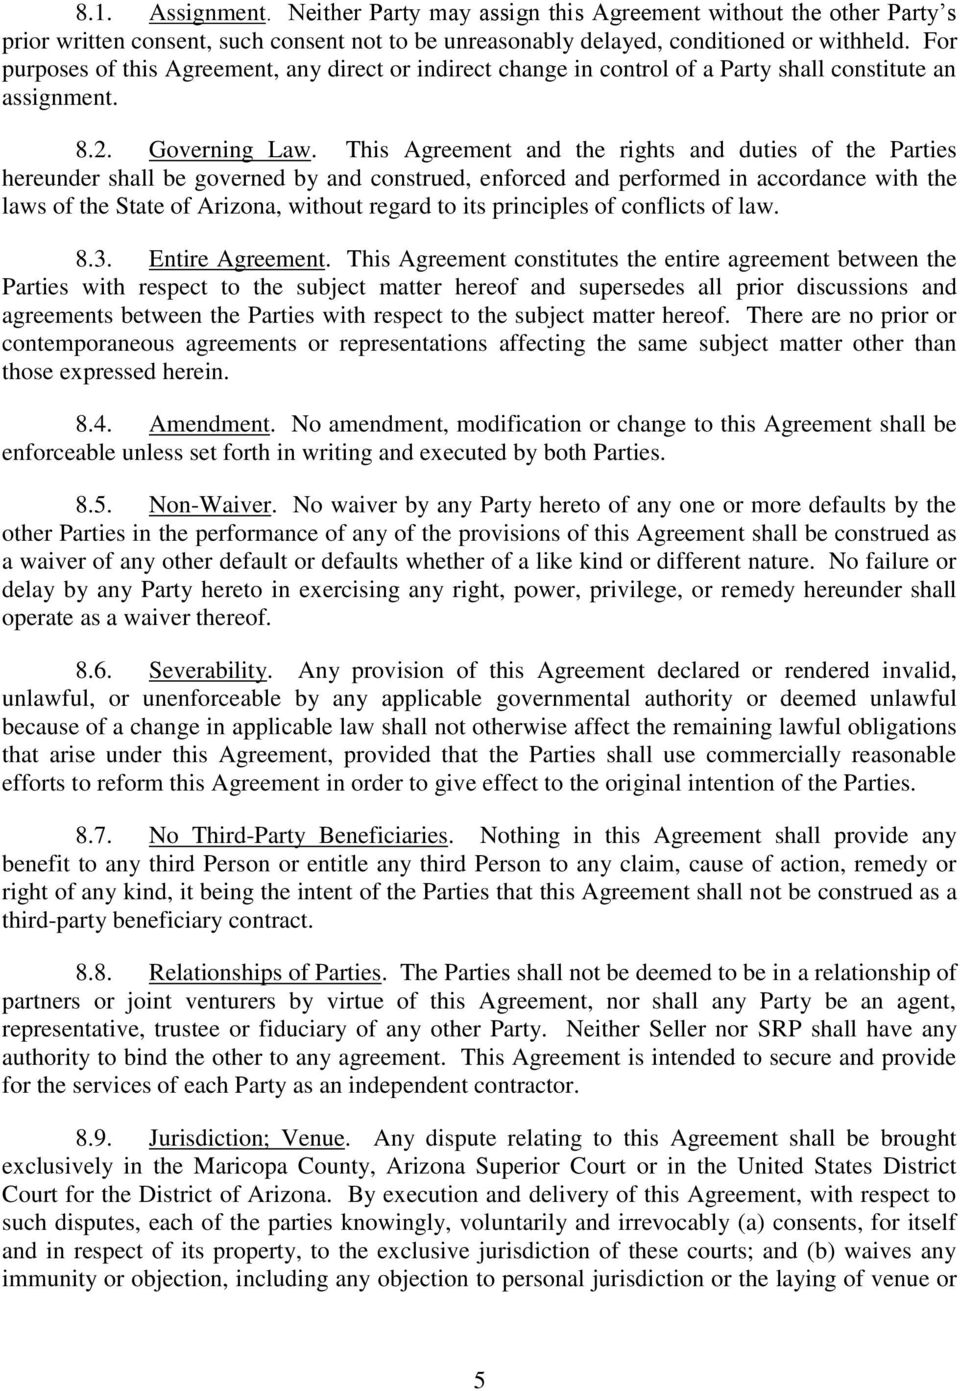 This Agreement and the rights and duties of the Parties hereunder shall be governed by and construed, enforced and performed in accordance with the laws of the State of Arizona, without regard to its